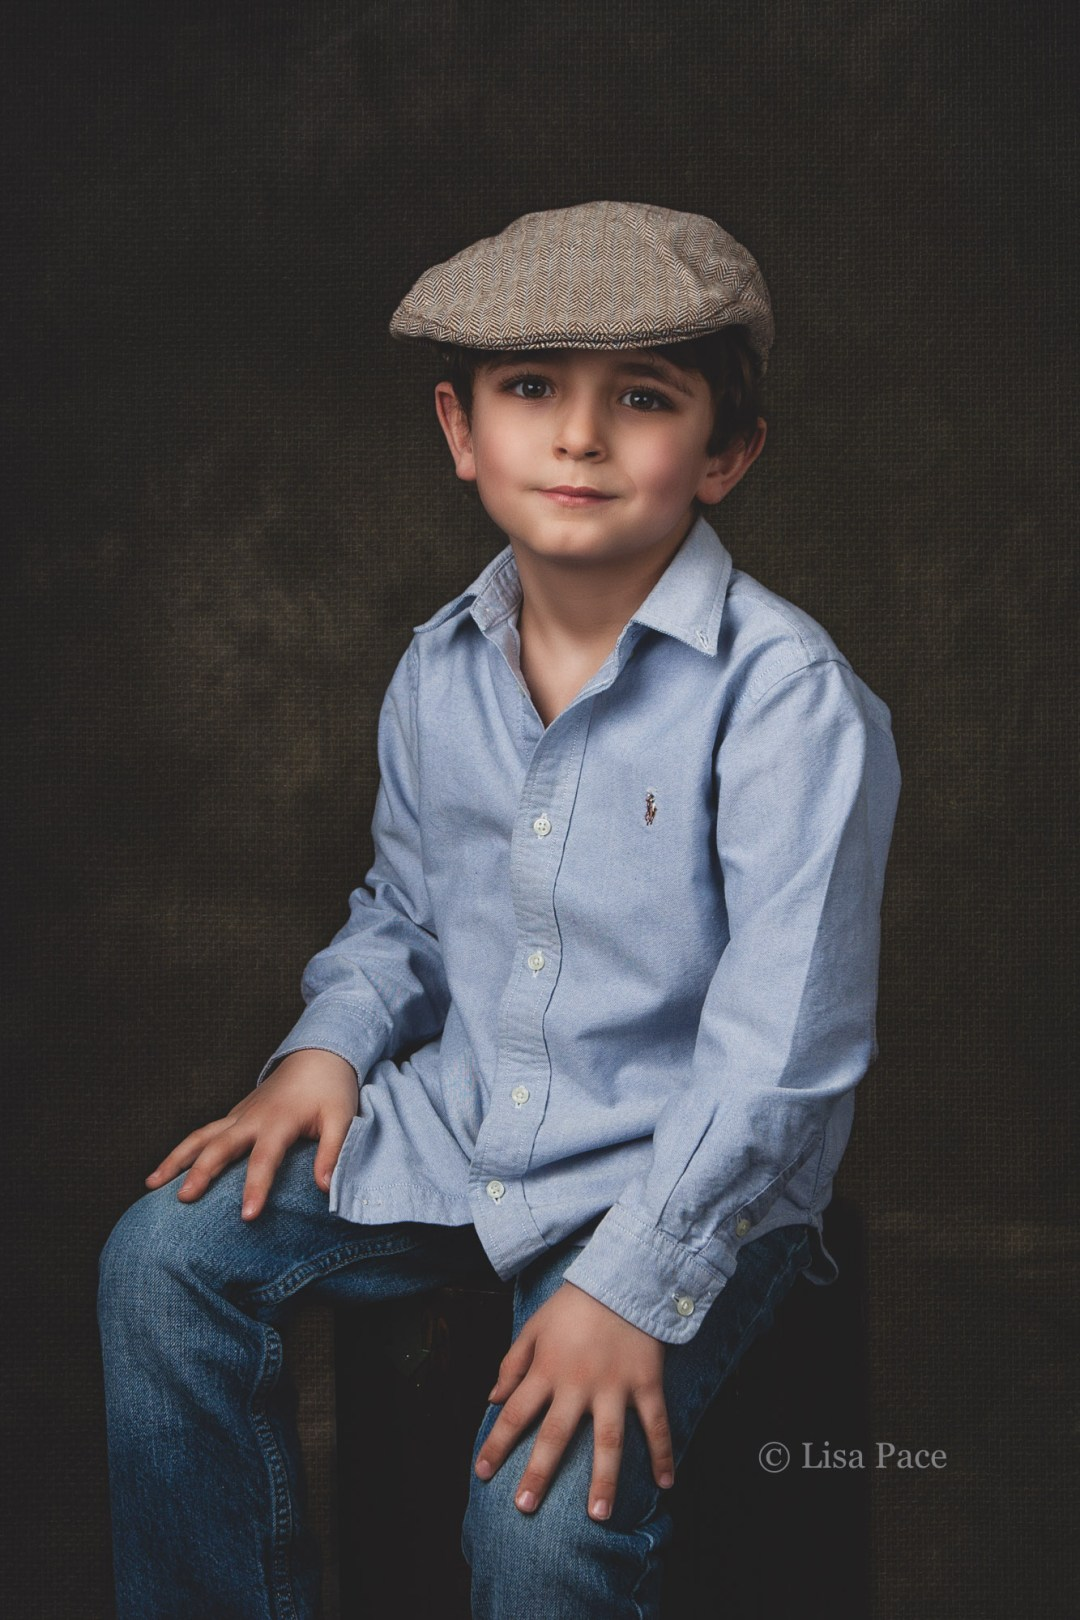 young boy in cap sitting on stool